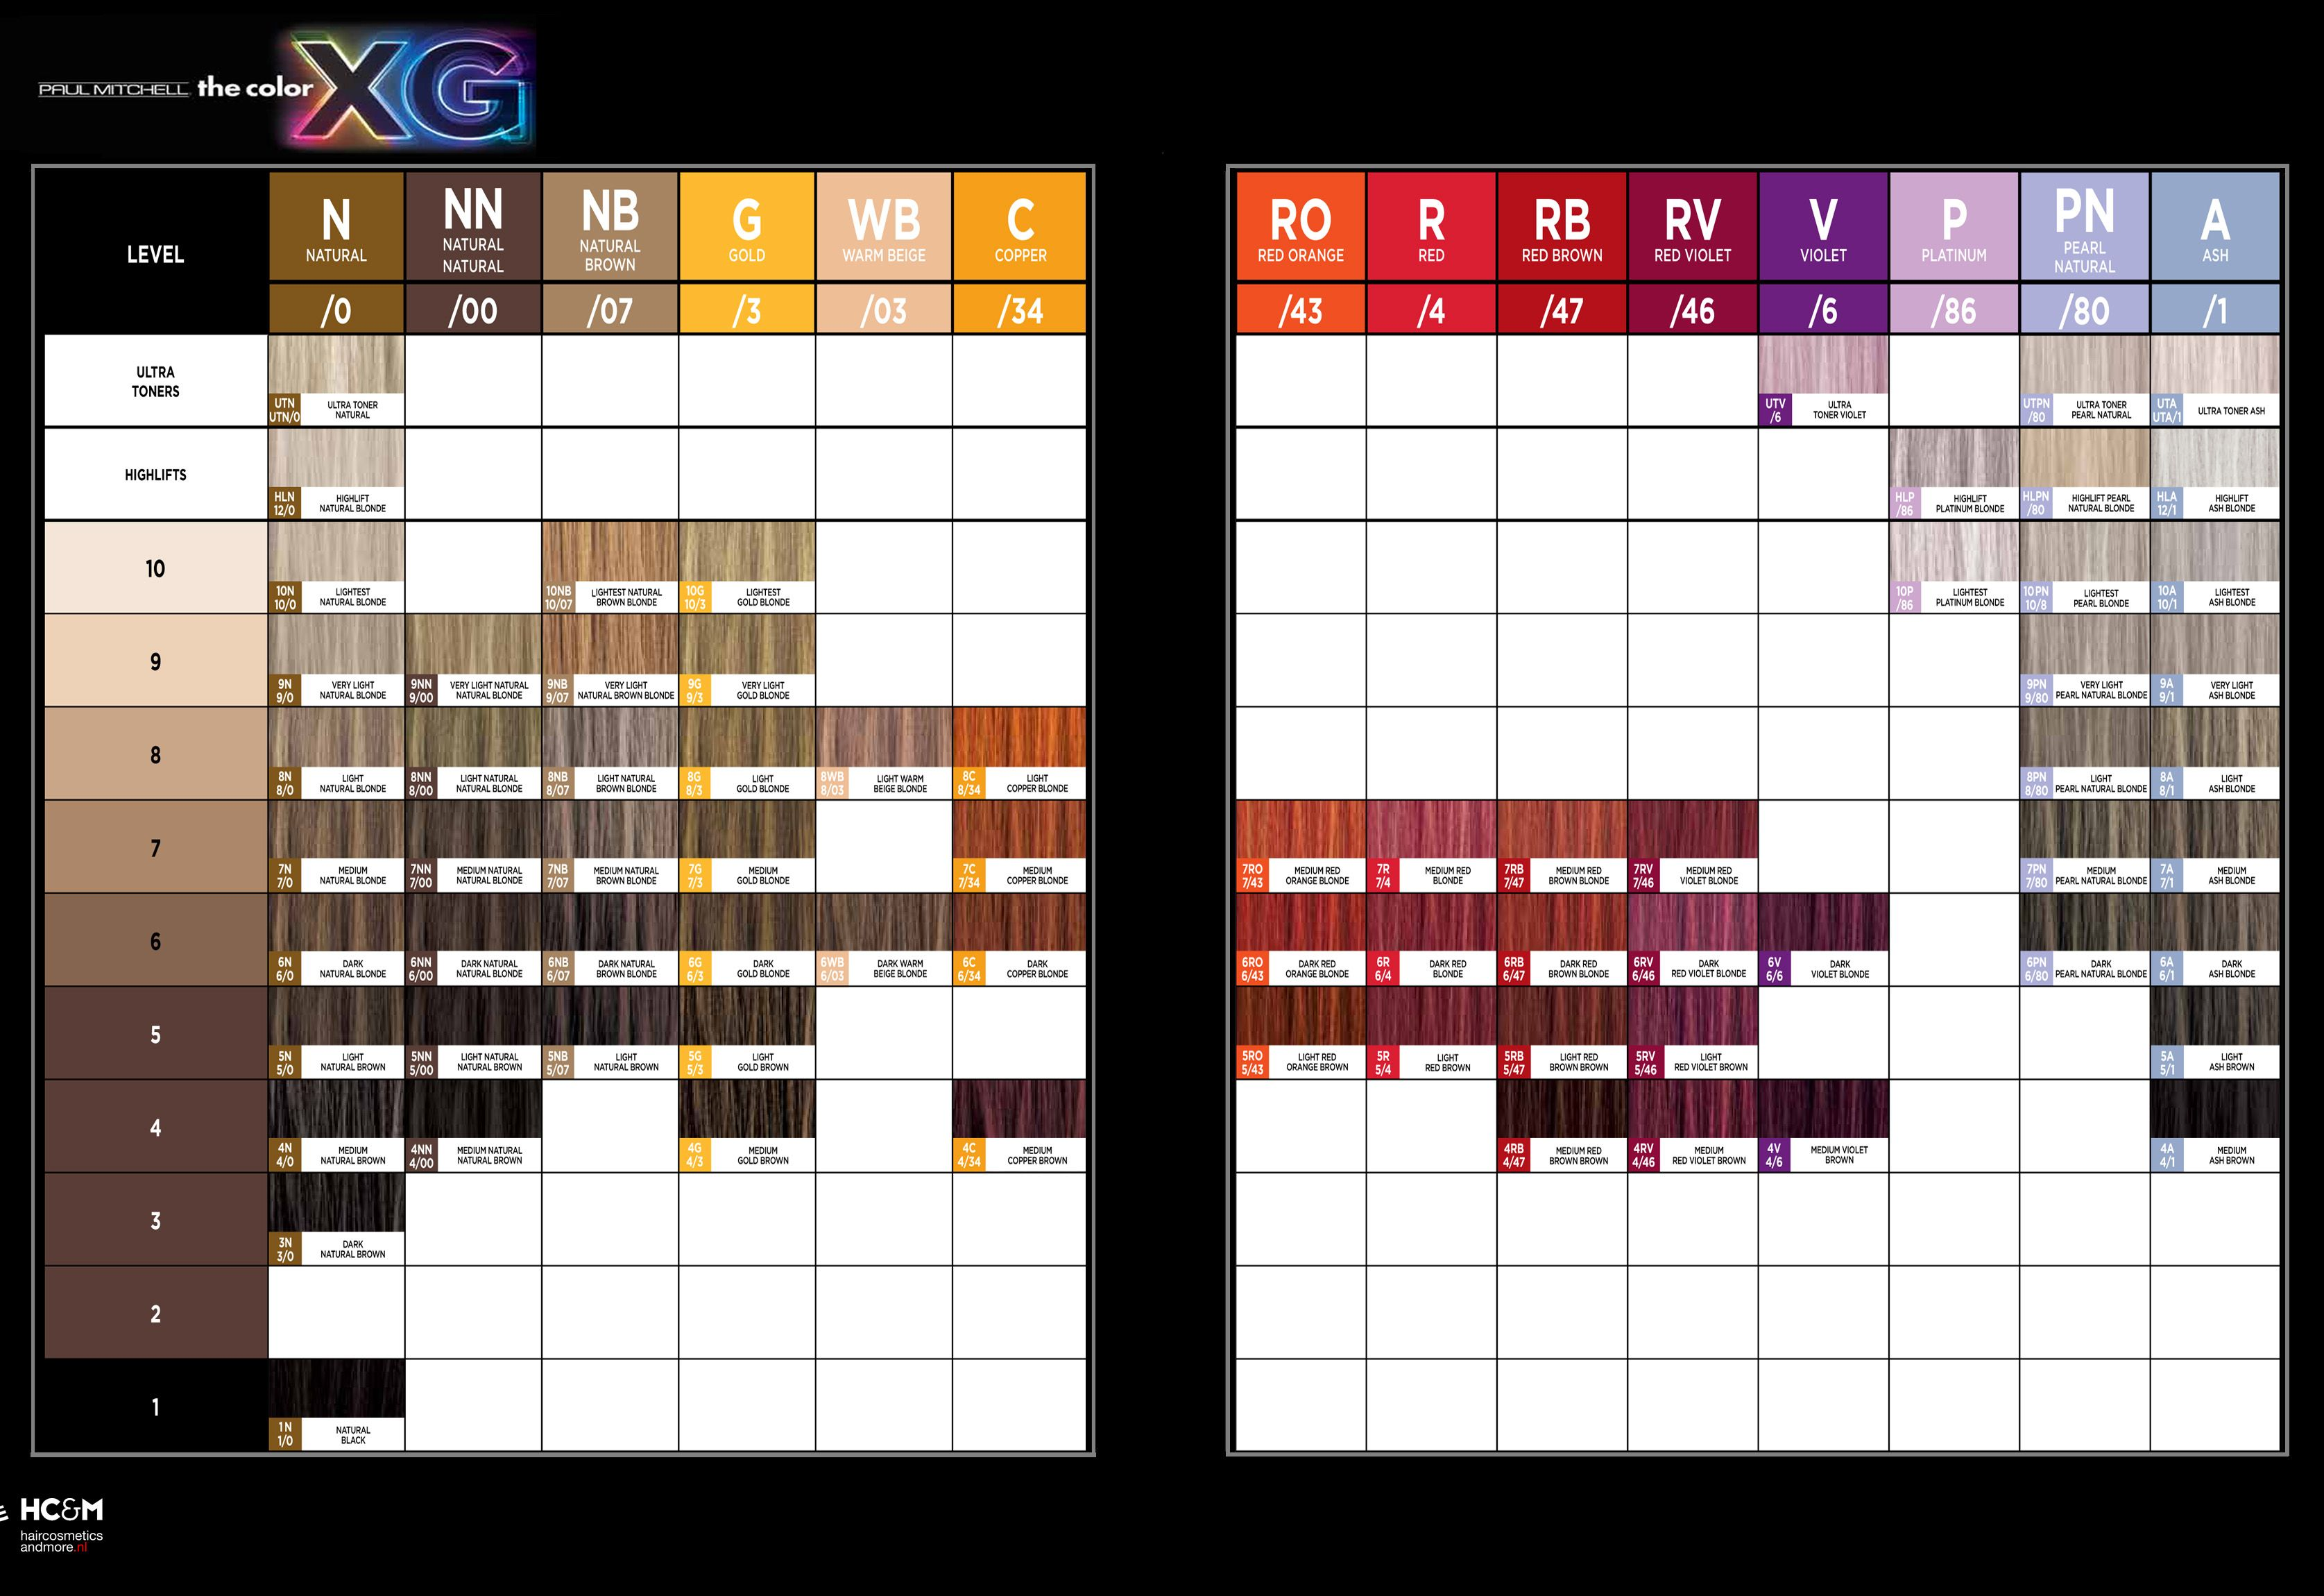 Paul Mitchell The Color Xg Color Chart Color Charts